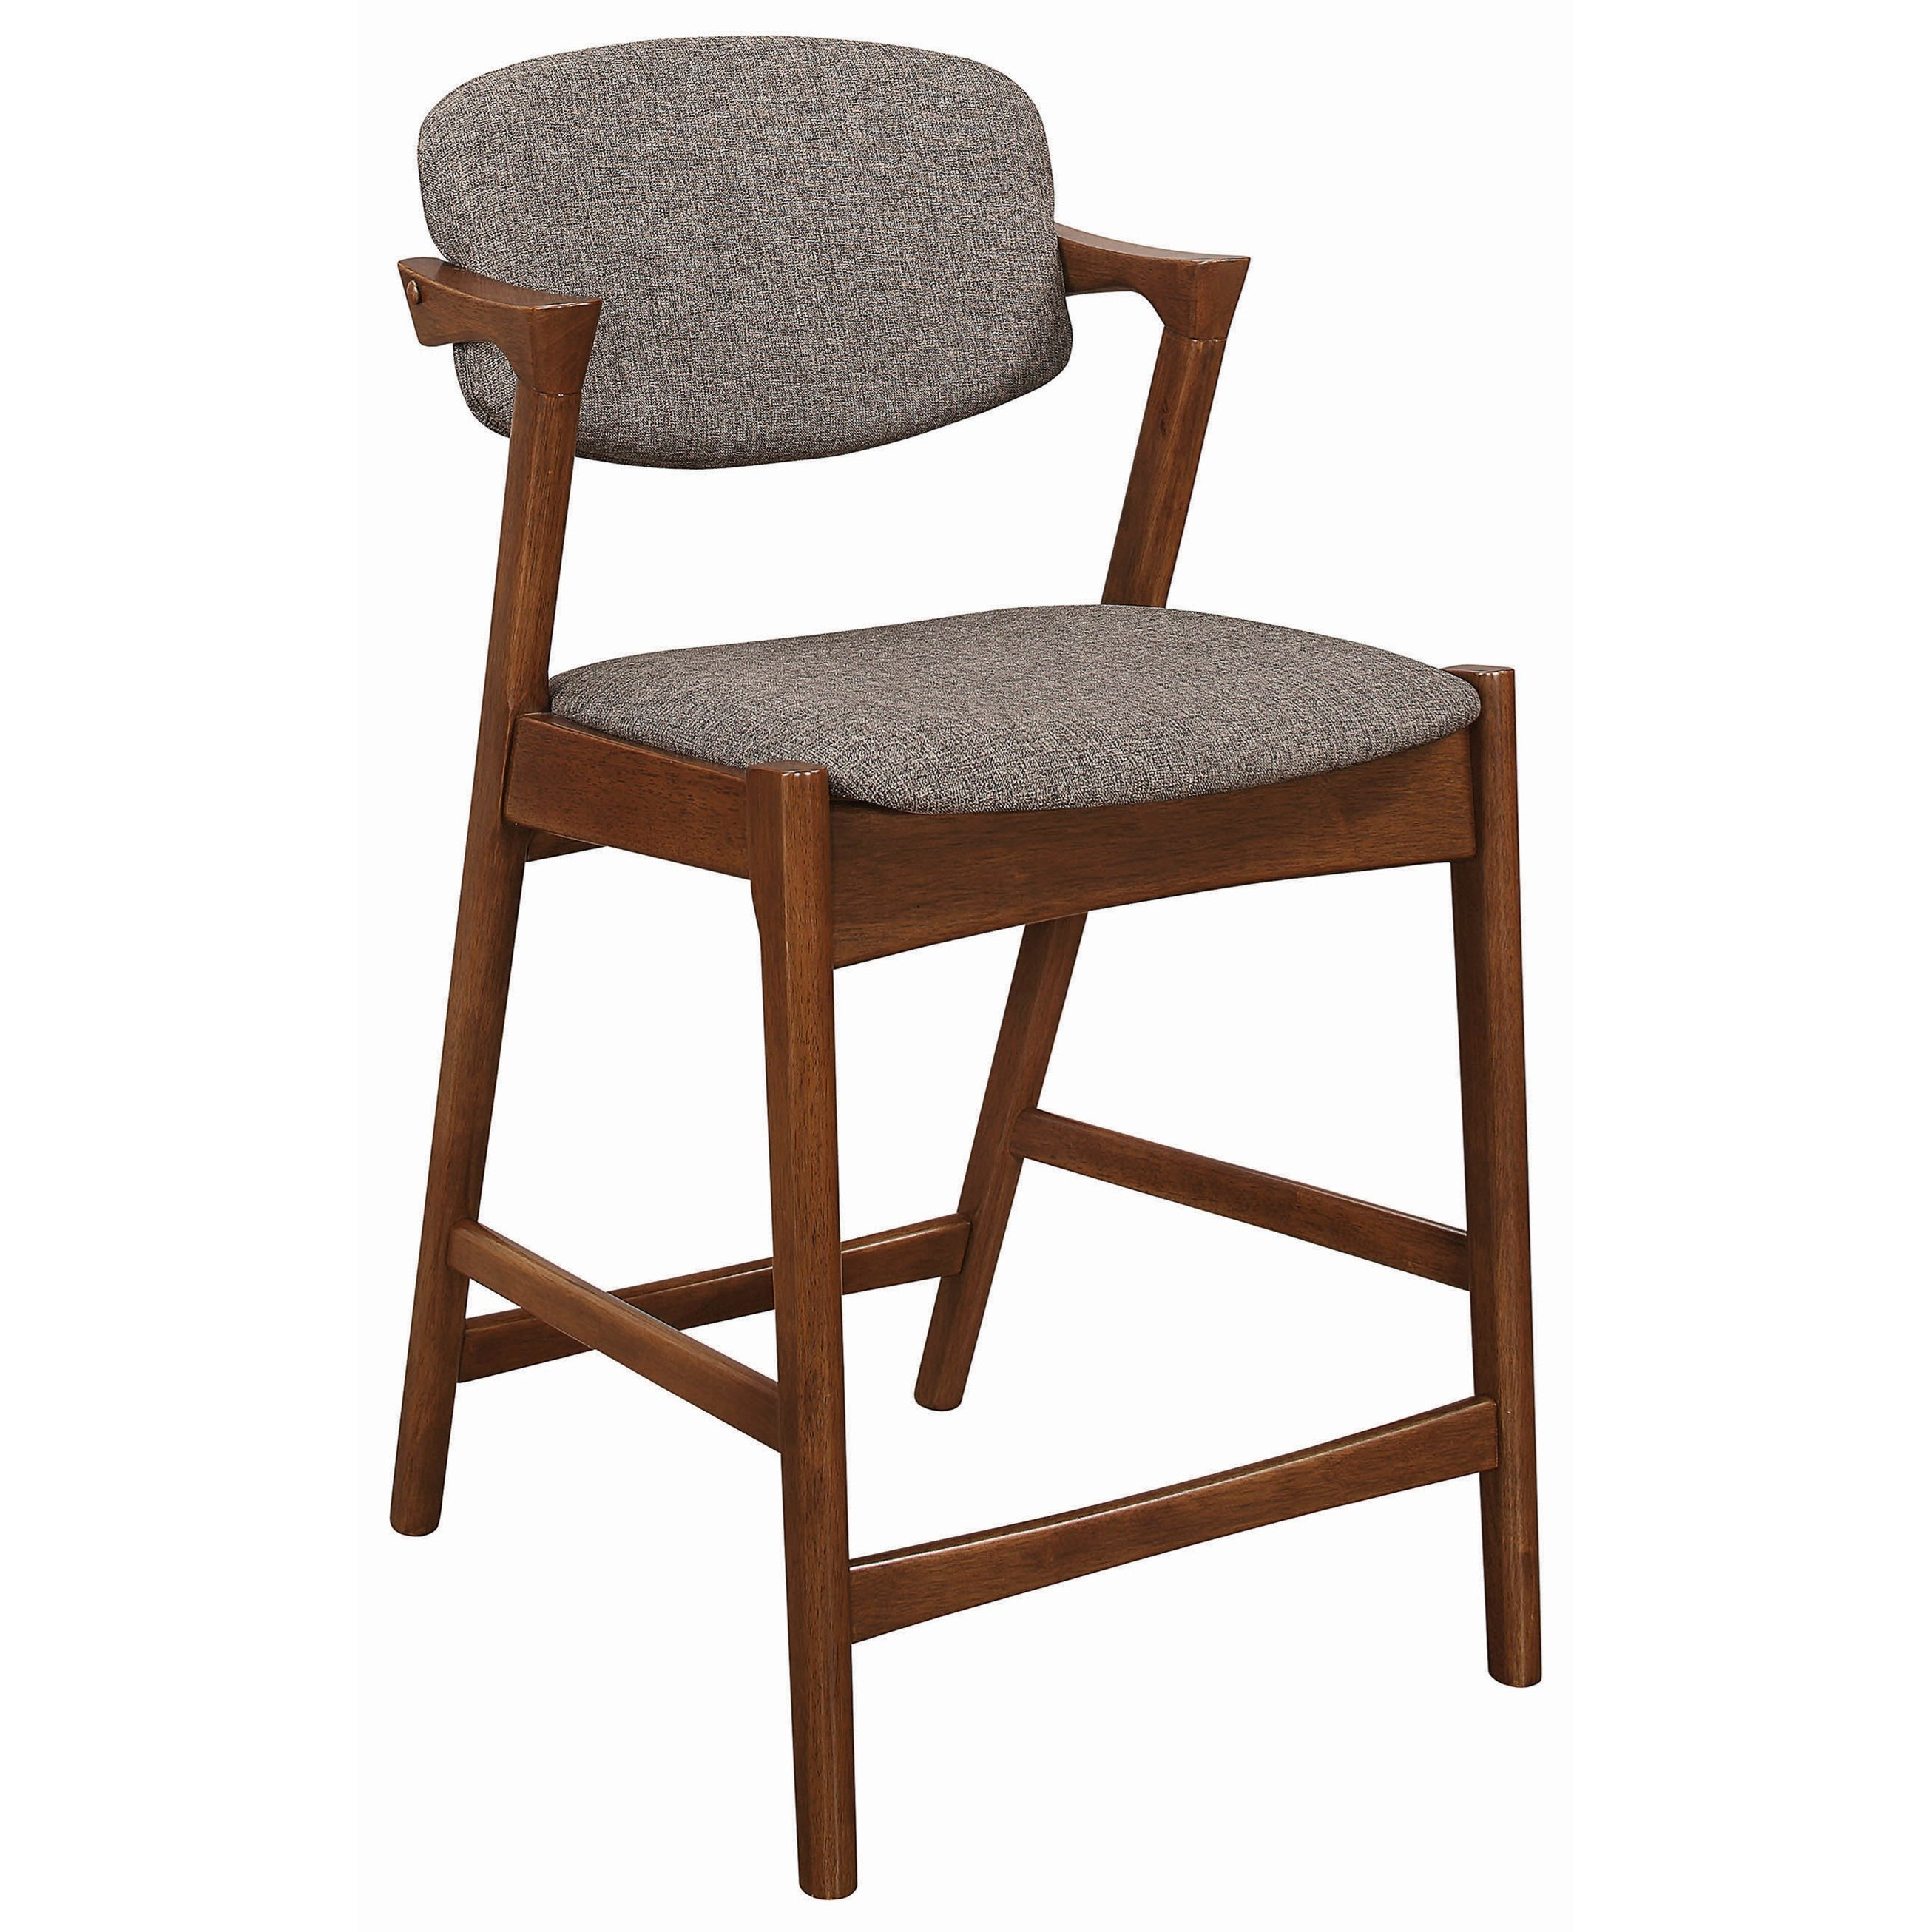 upholstered counter height chair toddler plastic chairs coaster dining and bar stools 100708 mid century modern stool dunk bright furniture